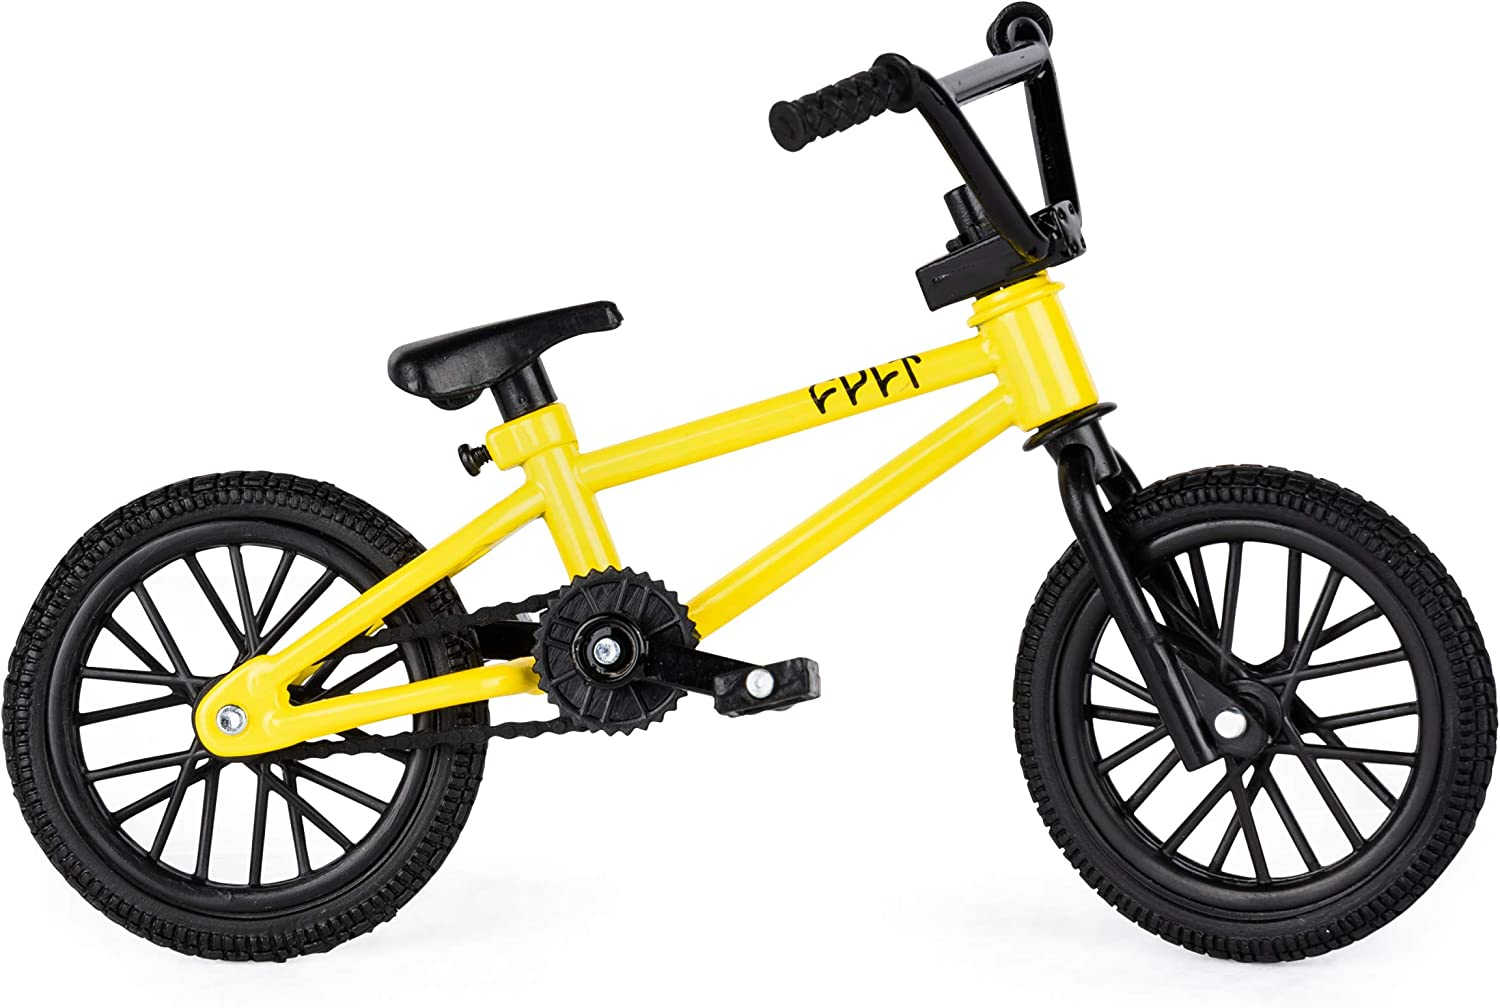 Tech Deck BMX Finger Bike Series 12 and Finger Bike Games Flares Yellow Grinds Cult Replica Bike with Real Metal Frame and Moveable Parts for Flick Tricks Graphics